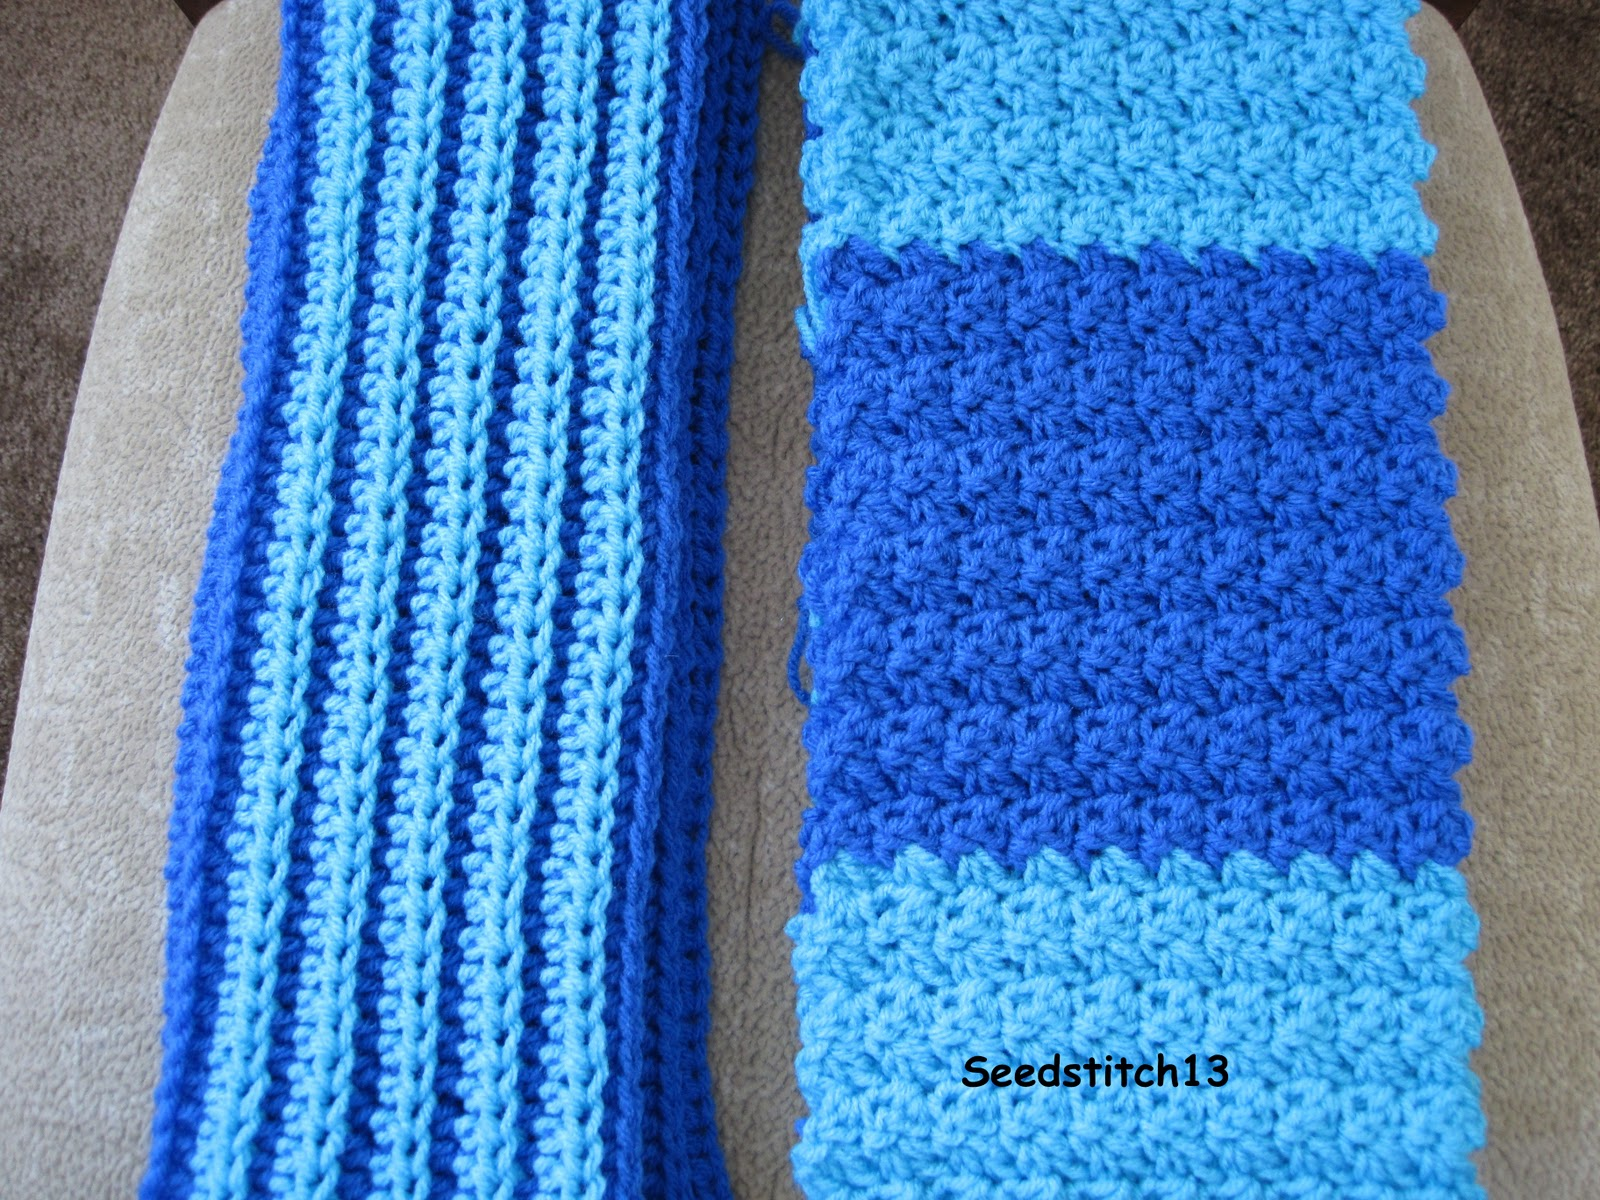 Knitting Stitches Seed Stitch : Seedstitch13: Seed Stitch Scarf